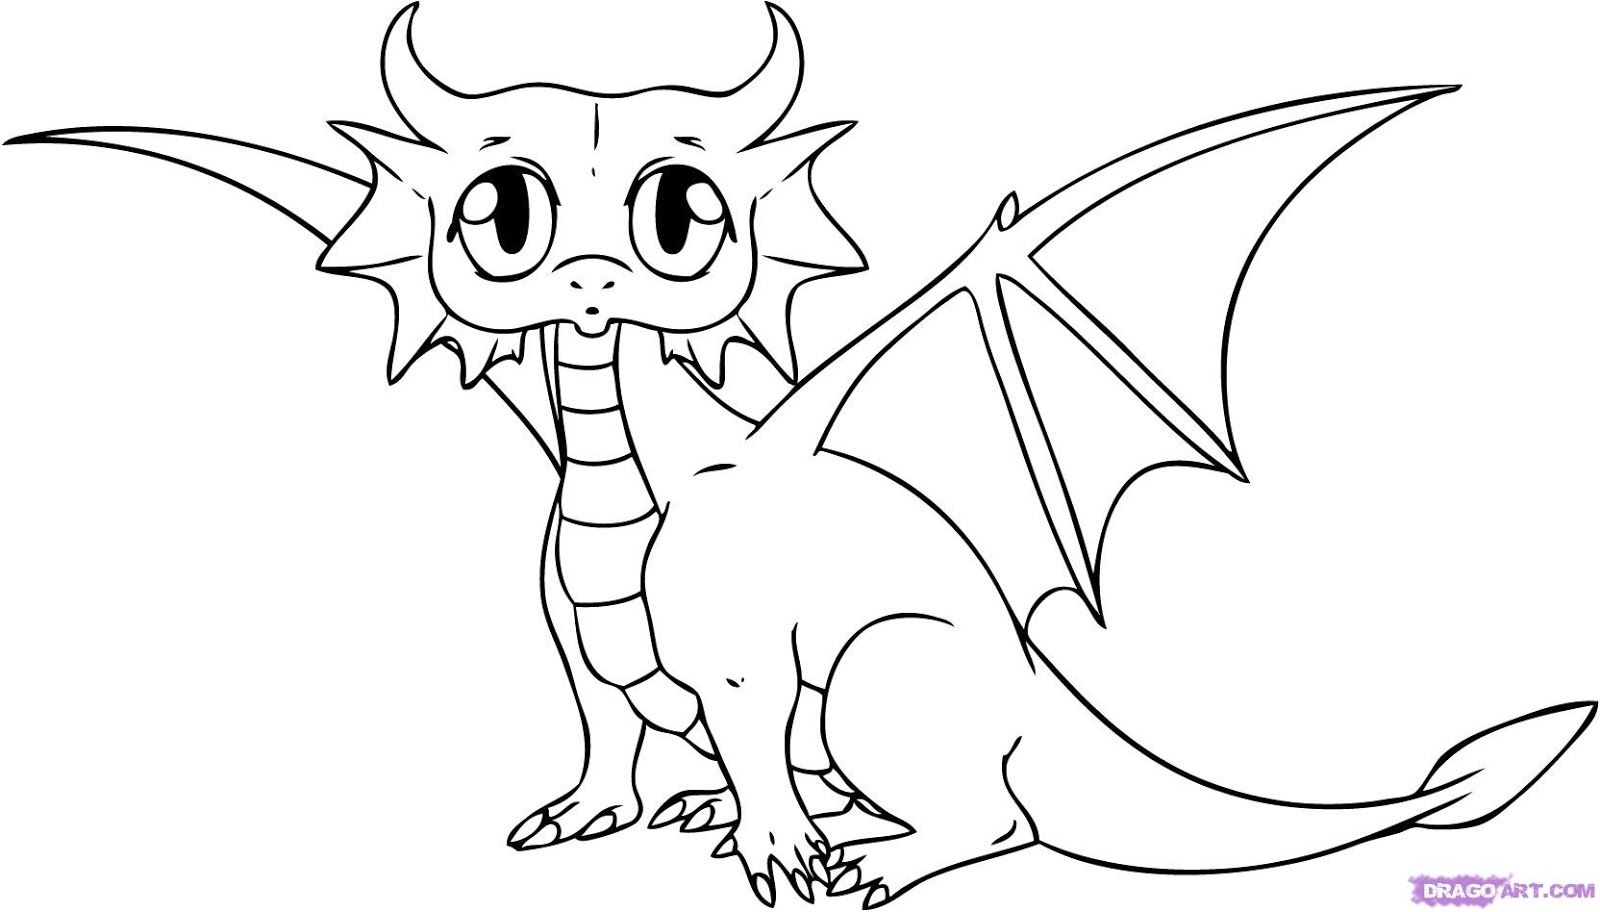 Images For Gt Easy Dragon Drawings For Kids